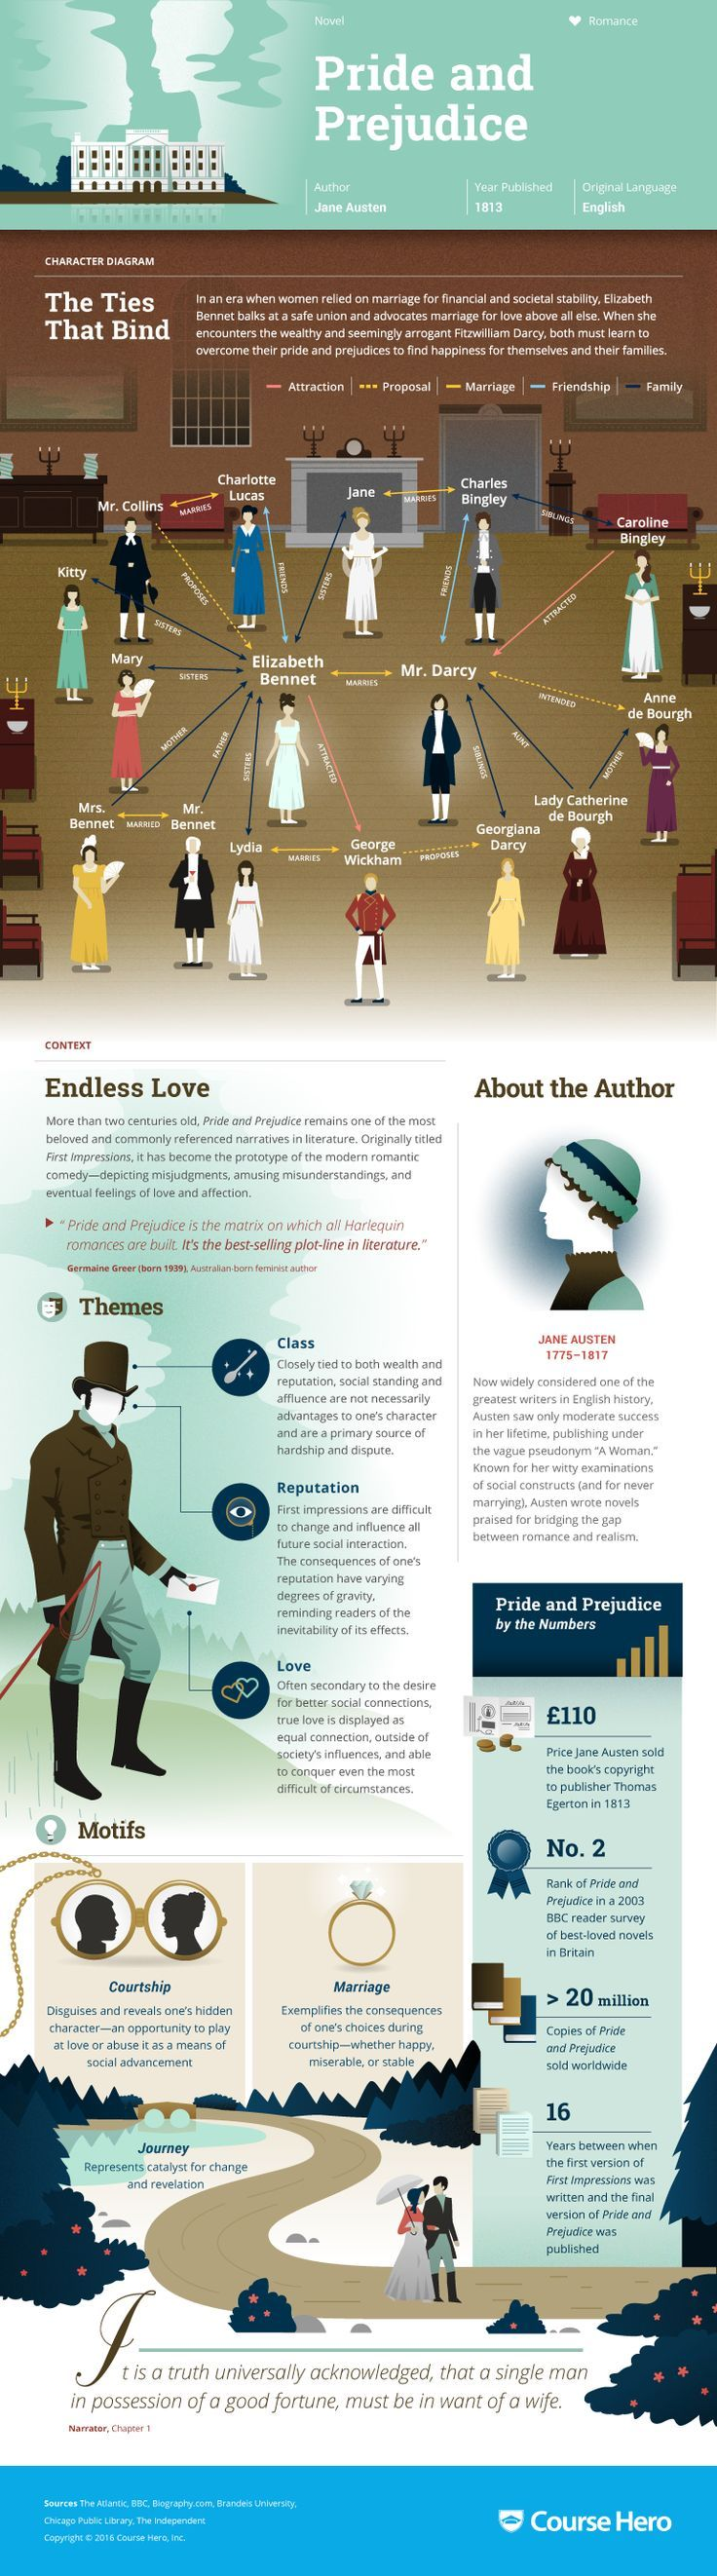 Pride and Prejudice Infographic | Brush up on all the characters and themes…